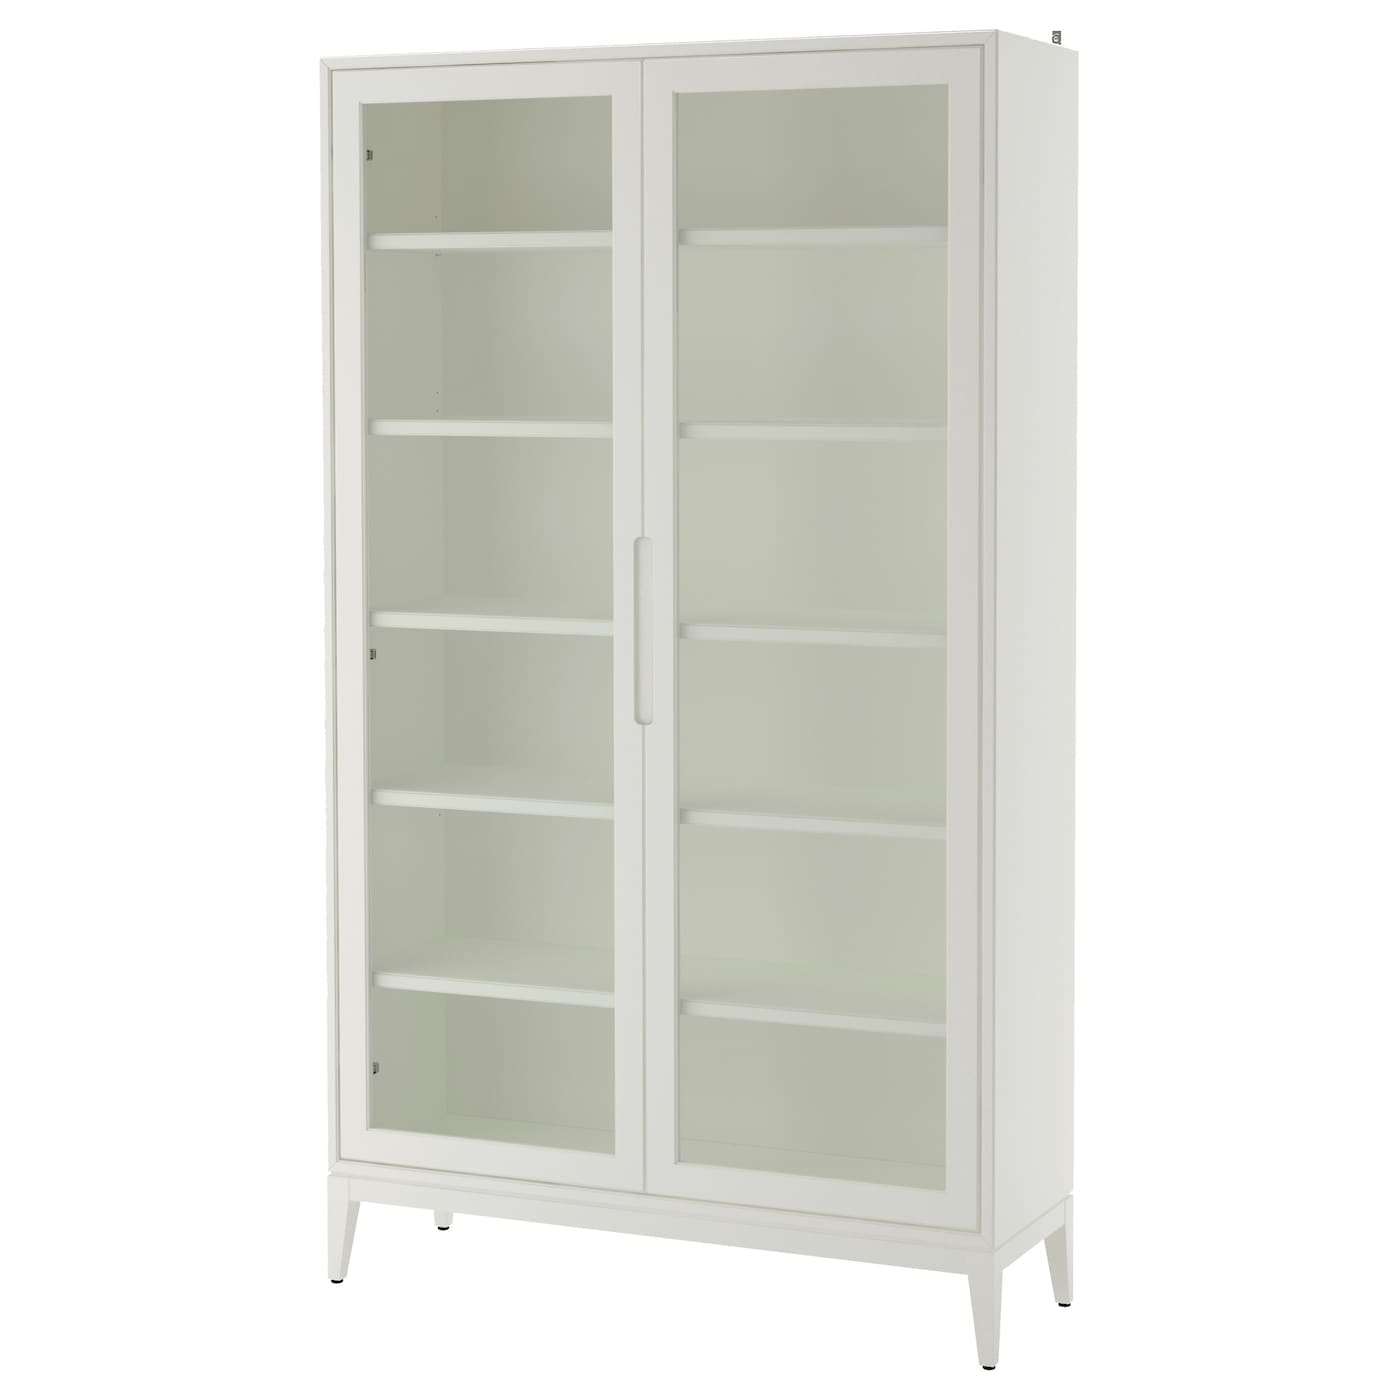 Charmant IKEA REGISSÖR Glass Door Cabinet Adjustable Shelves, So You Can Customise  Your Storage As